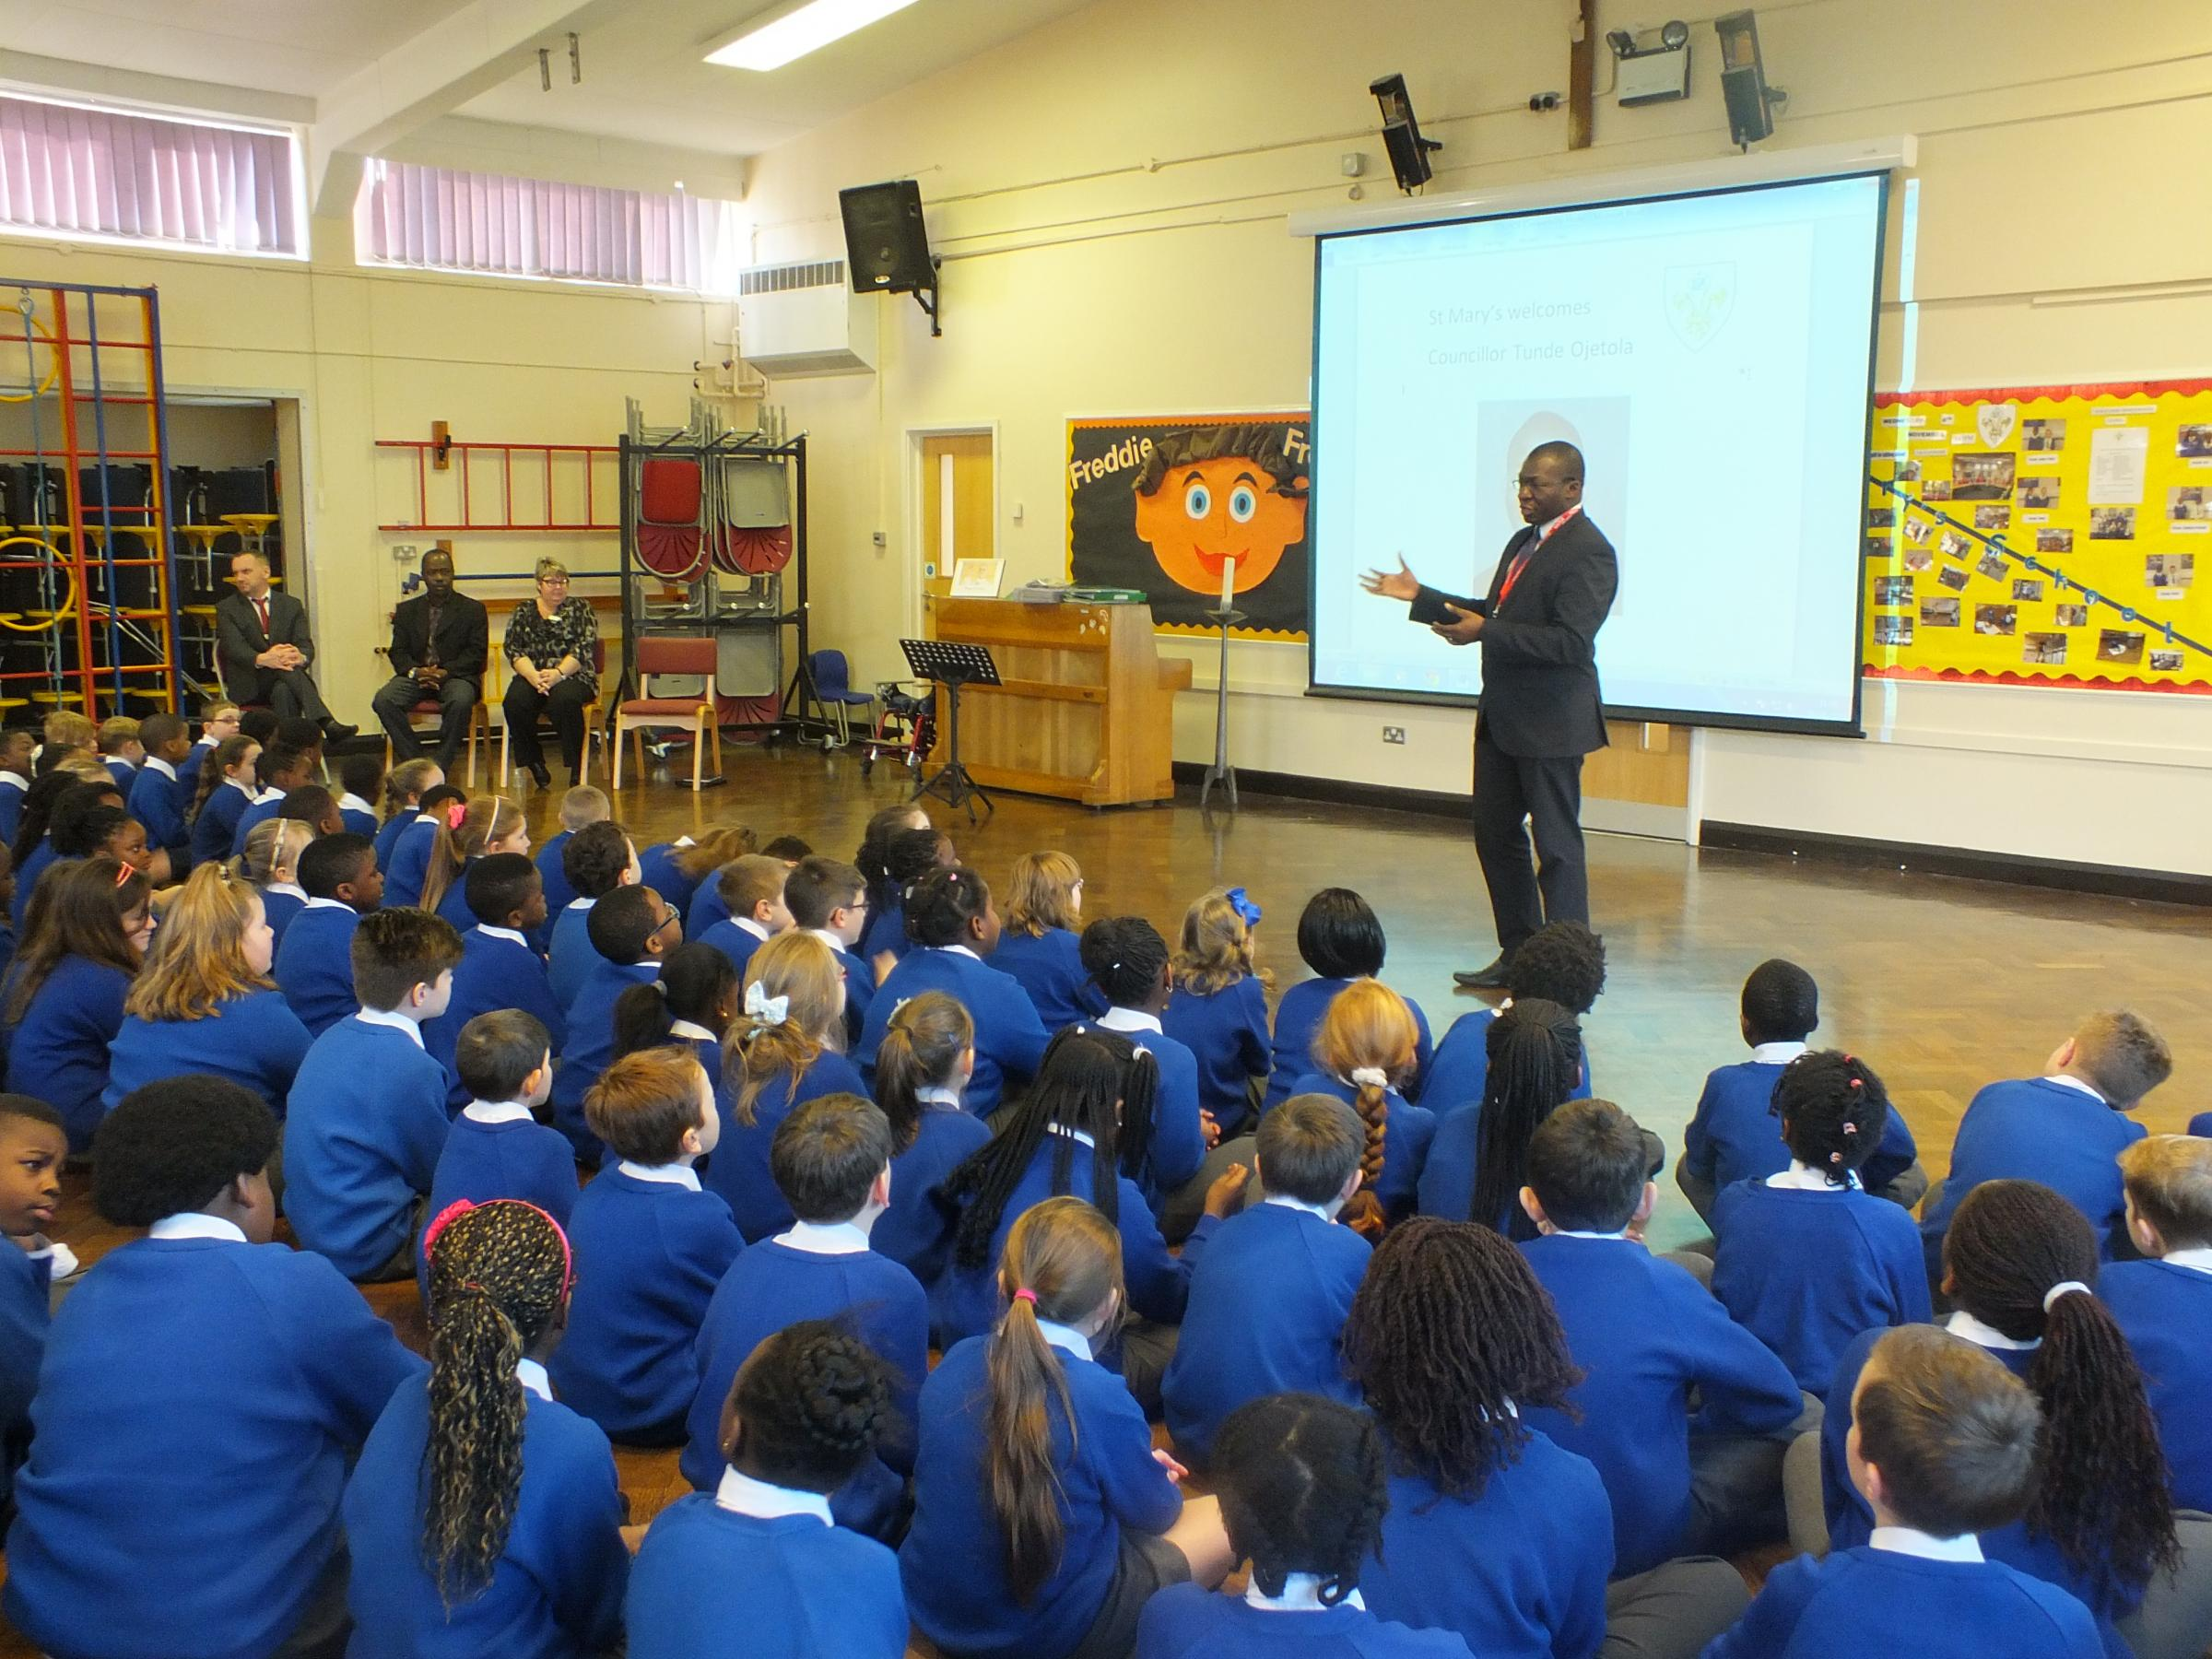 Councillor Tunde Ojetola takes questions from the pupils